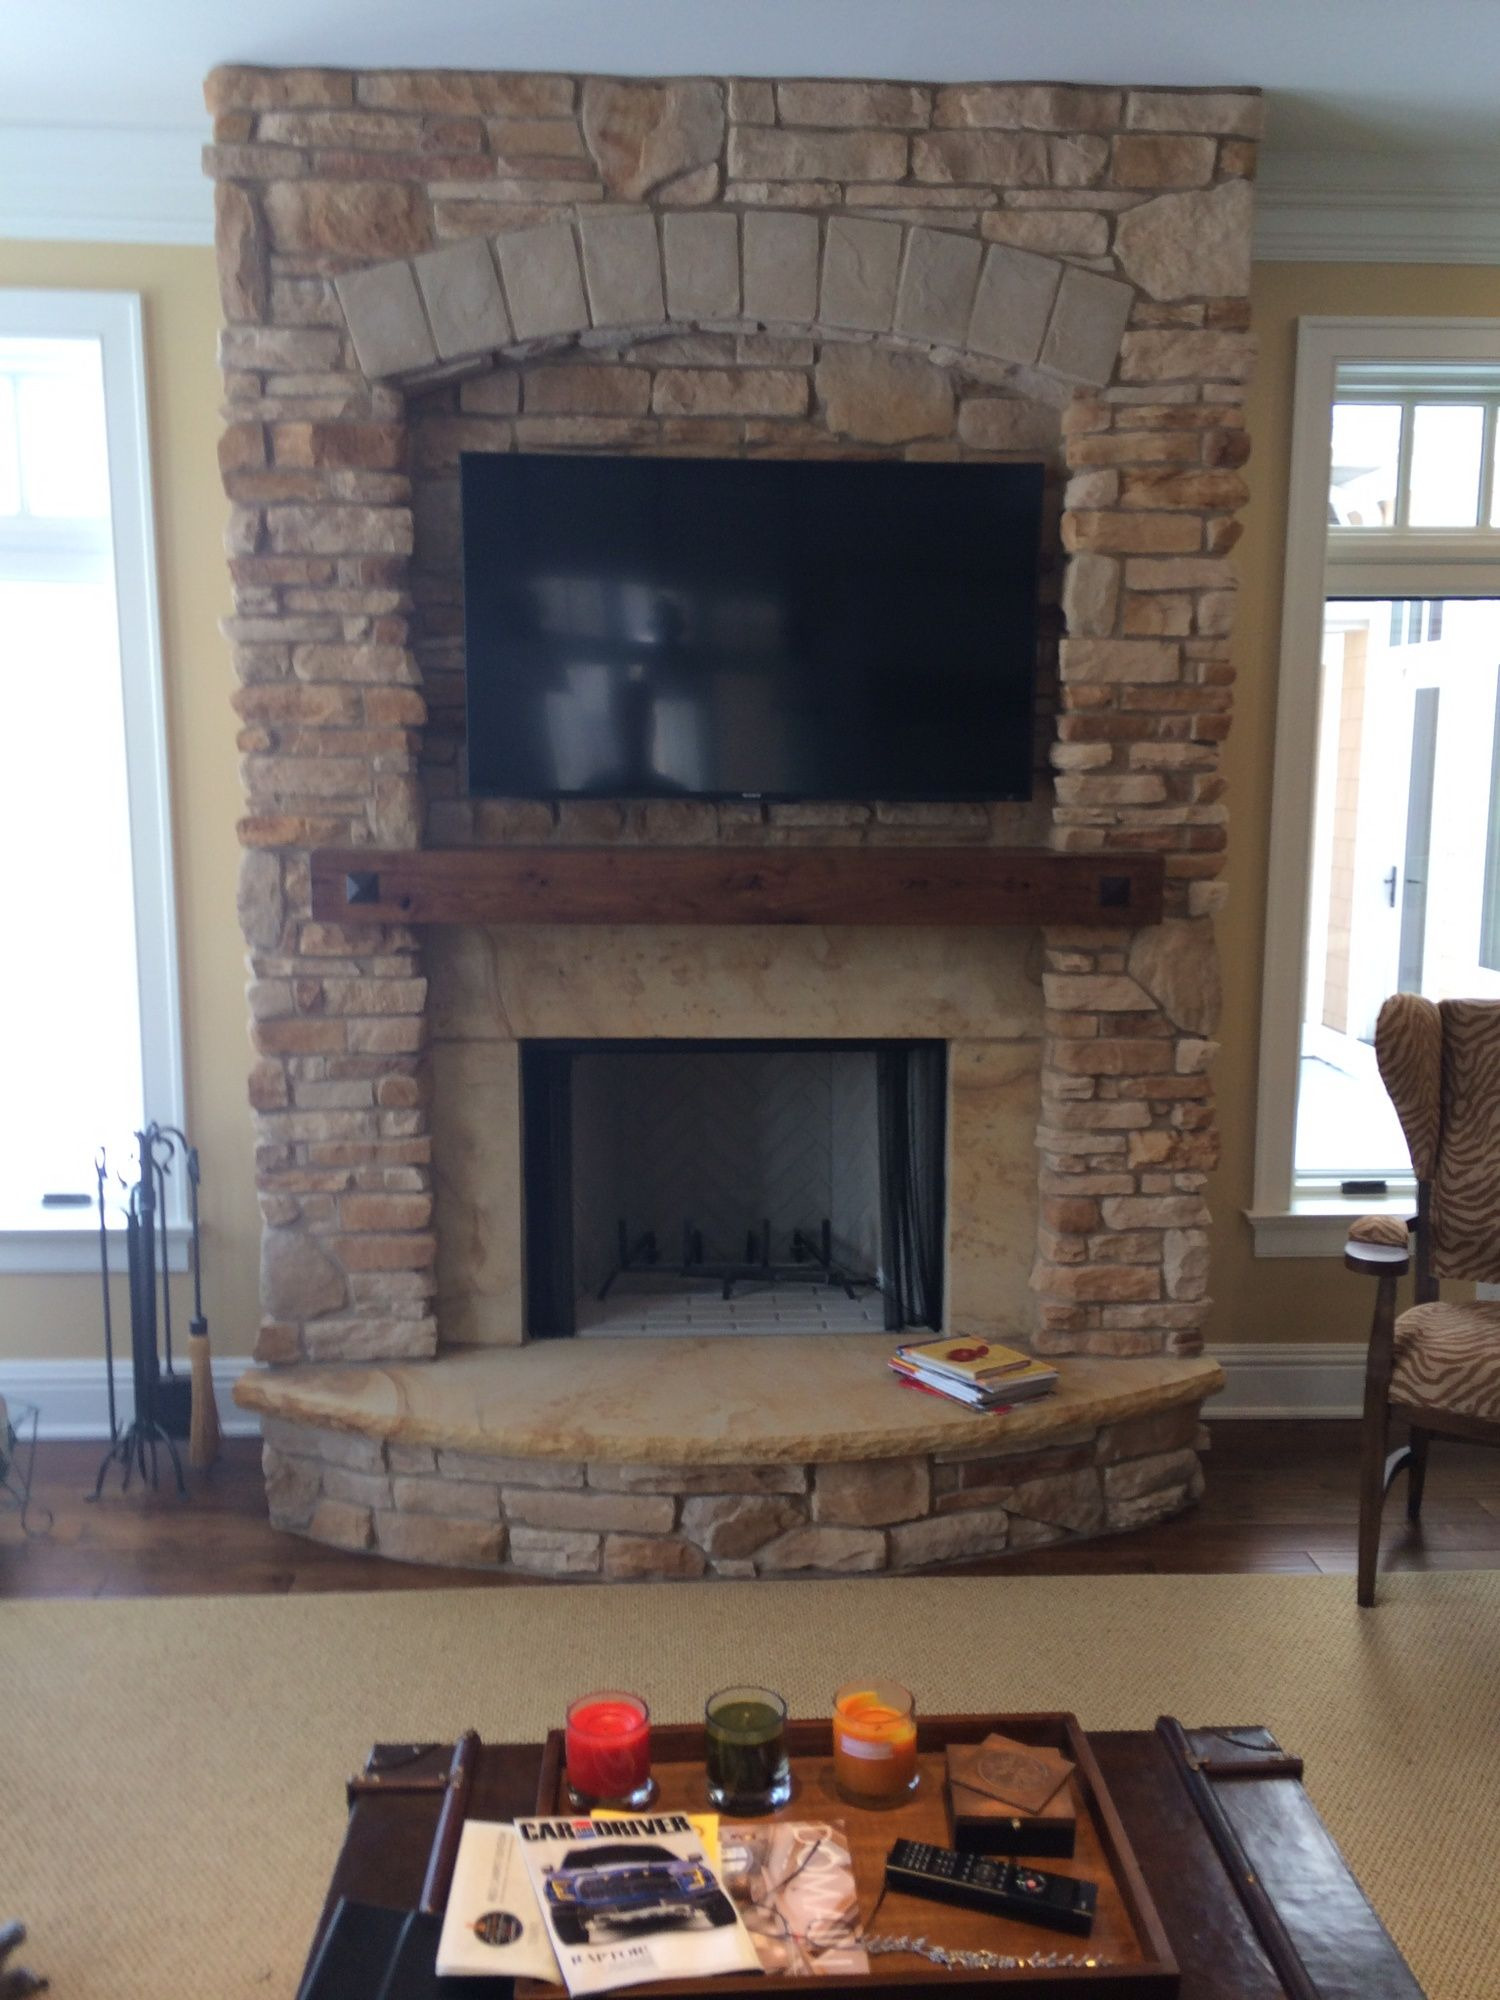 Gallery Job Pictures Northfield Fireplace Grills Fireplace Hearth Stone Rustic Stone Fireplace Fireplace Inserts